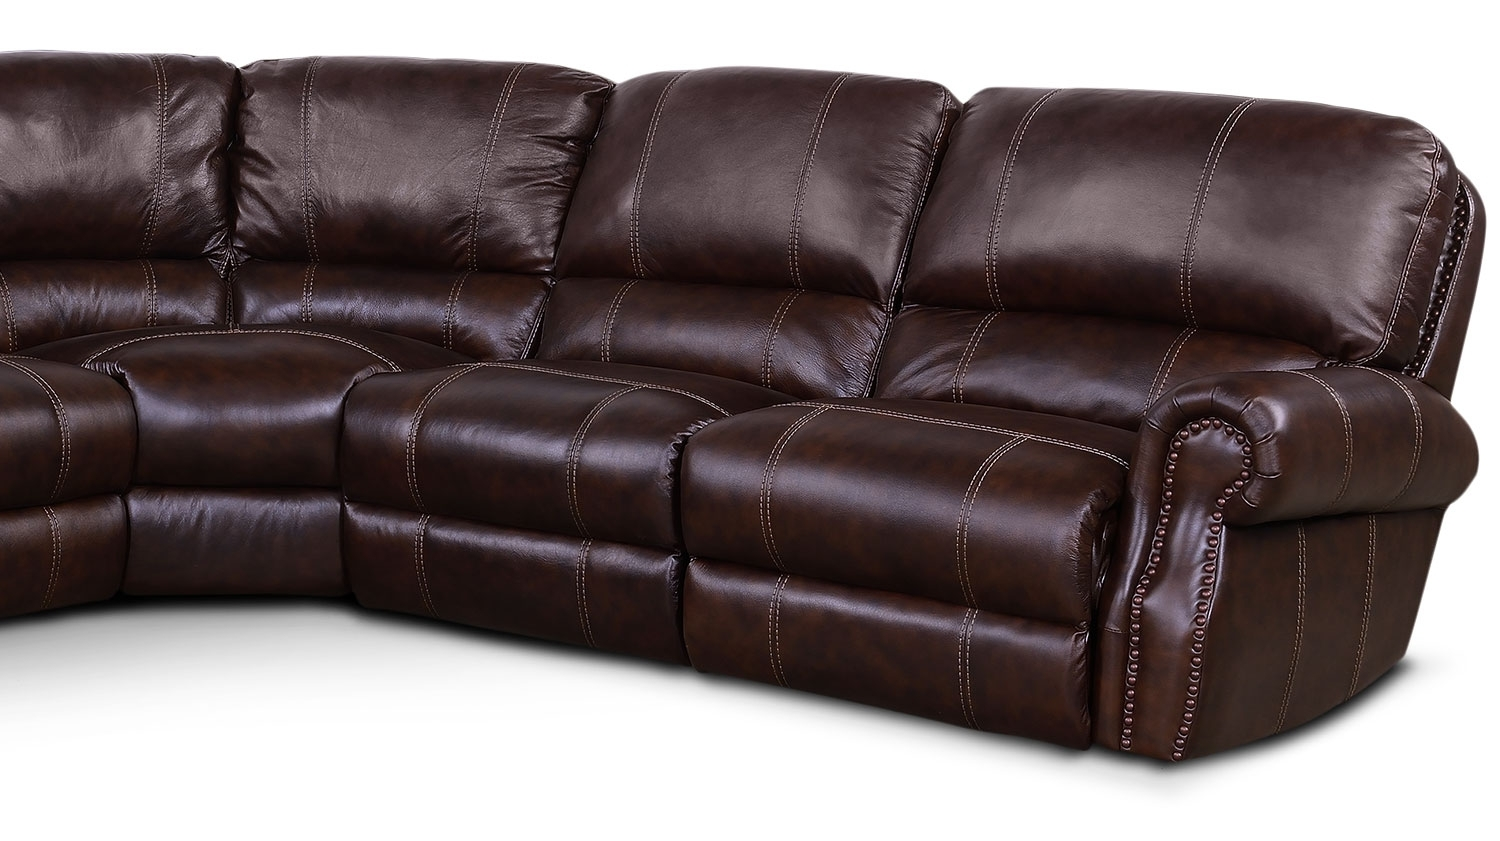 Dartmouth 6 Piece Power Reclining Sectional W/ Left Facing Chaise Within Norfolk Chocolate 6 Piece Sectionals With Raf Chaise (Image 8 of 25)